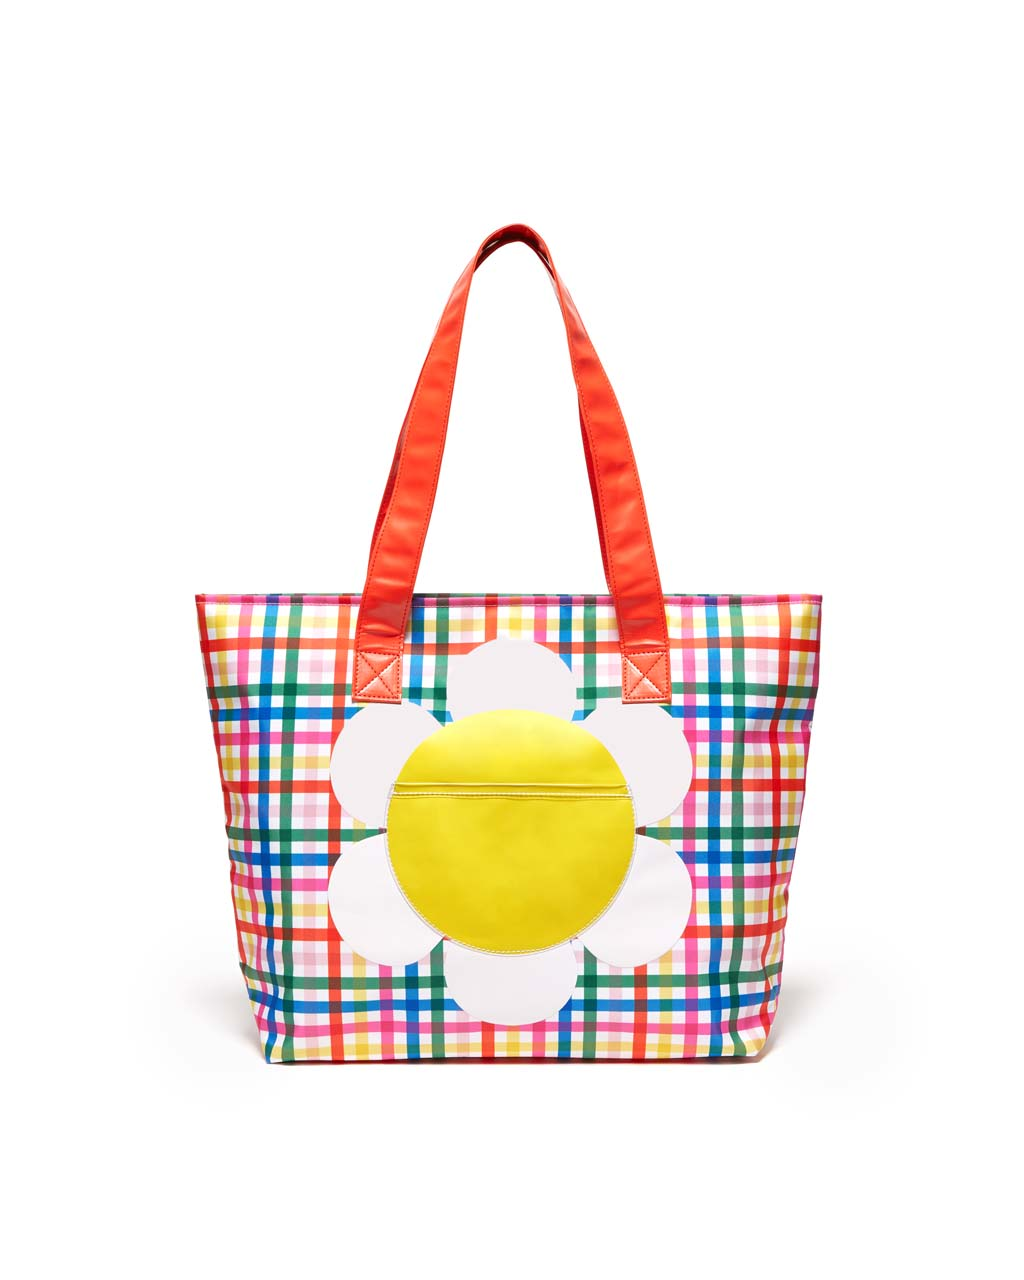 This Just Chill Out Cooler Bag comes in a rainbow plaid pattern, with a big white daisy printed on the front.